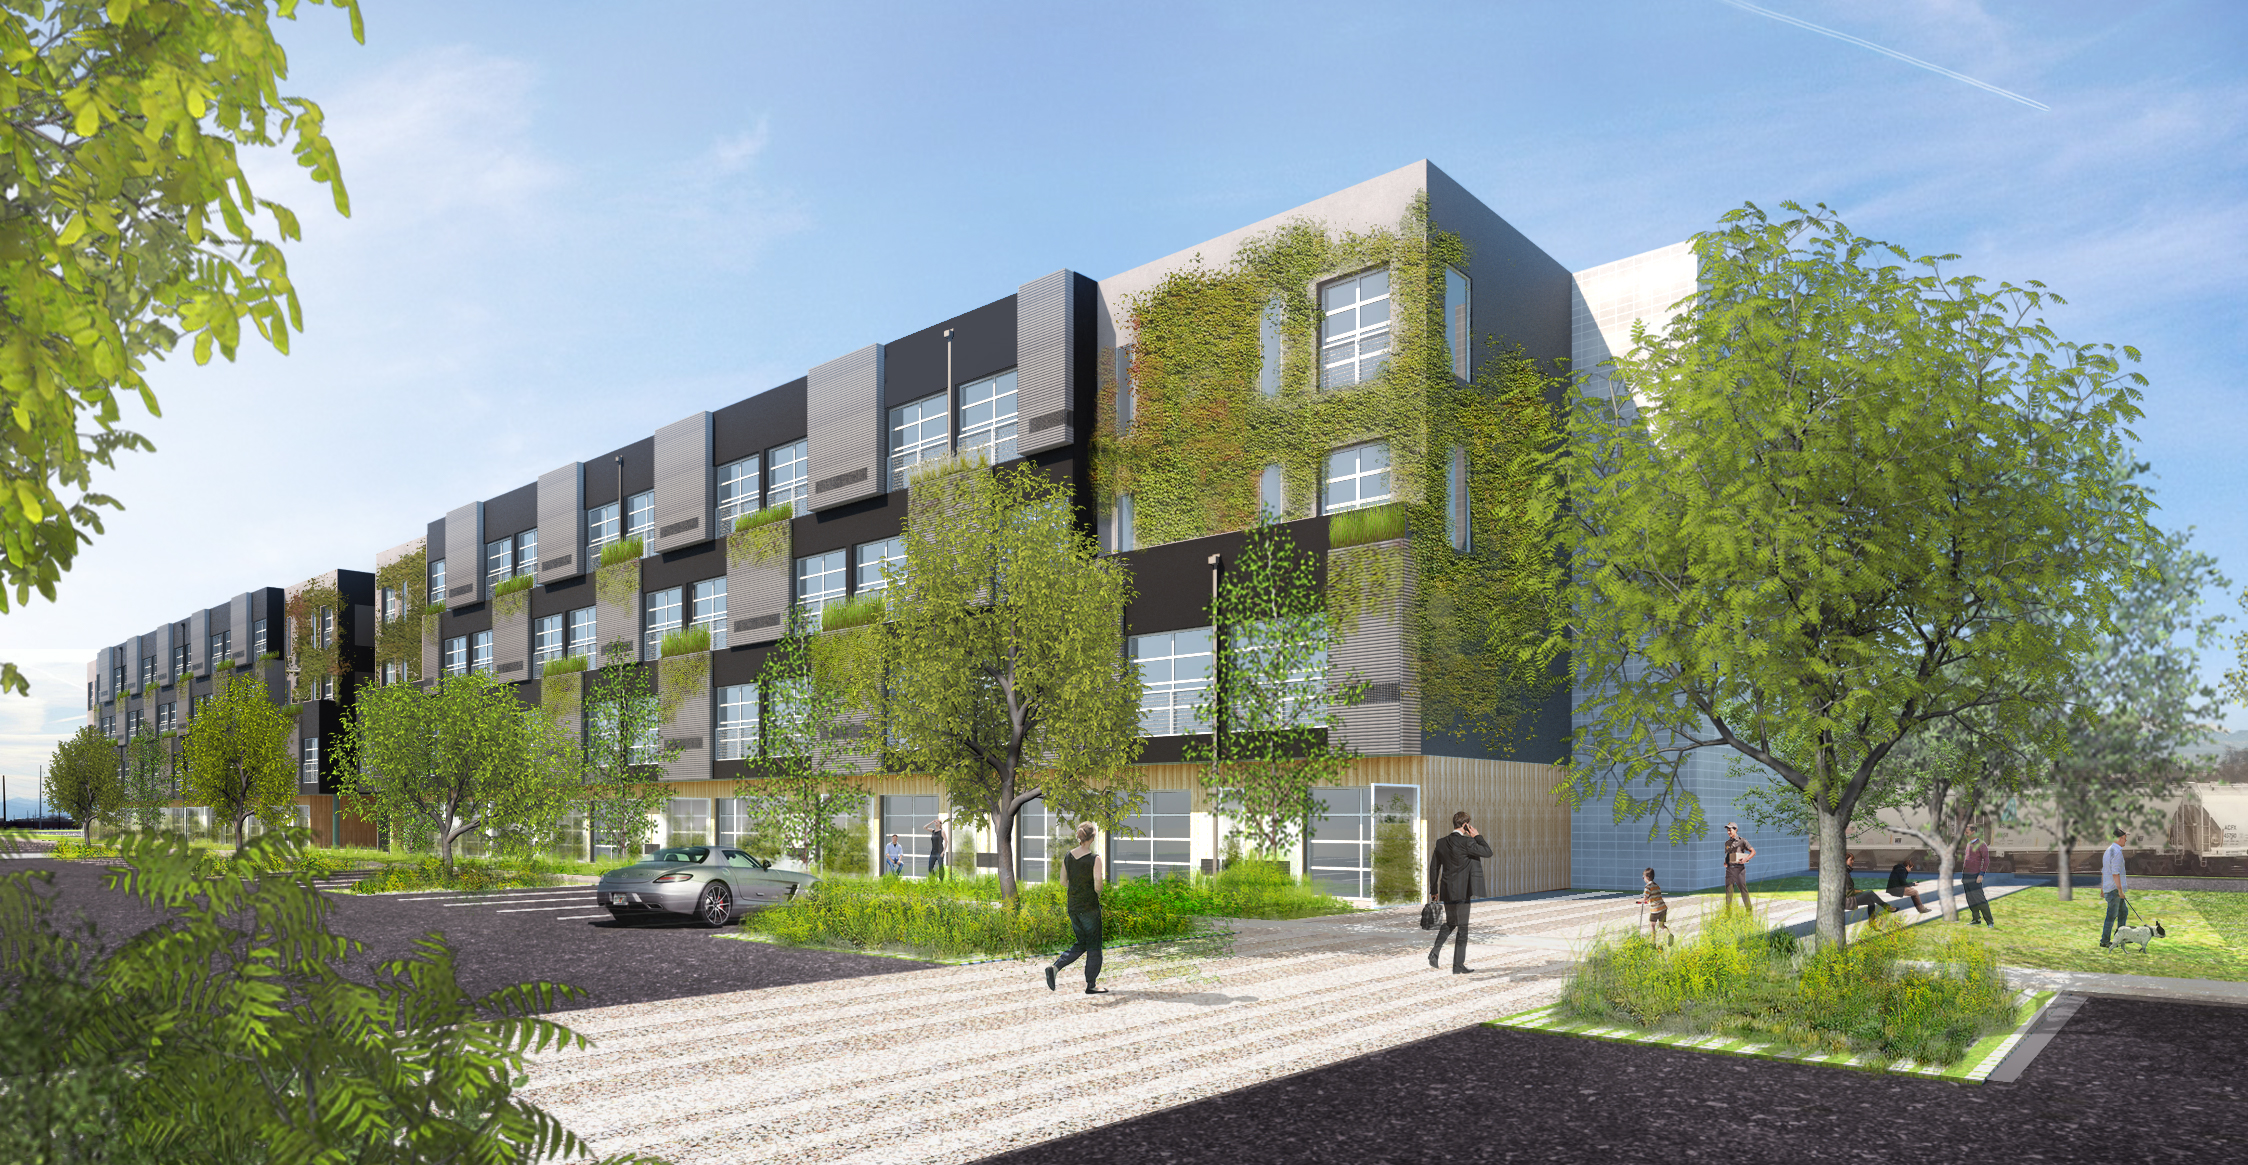 Zeppelin Development project breaks ground